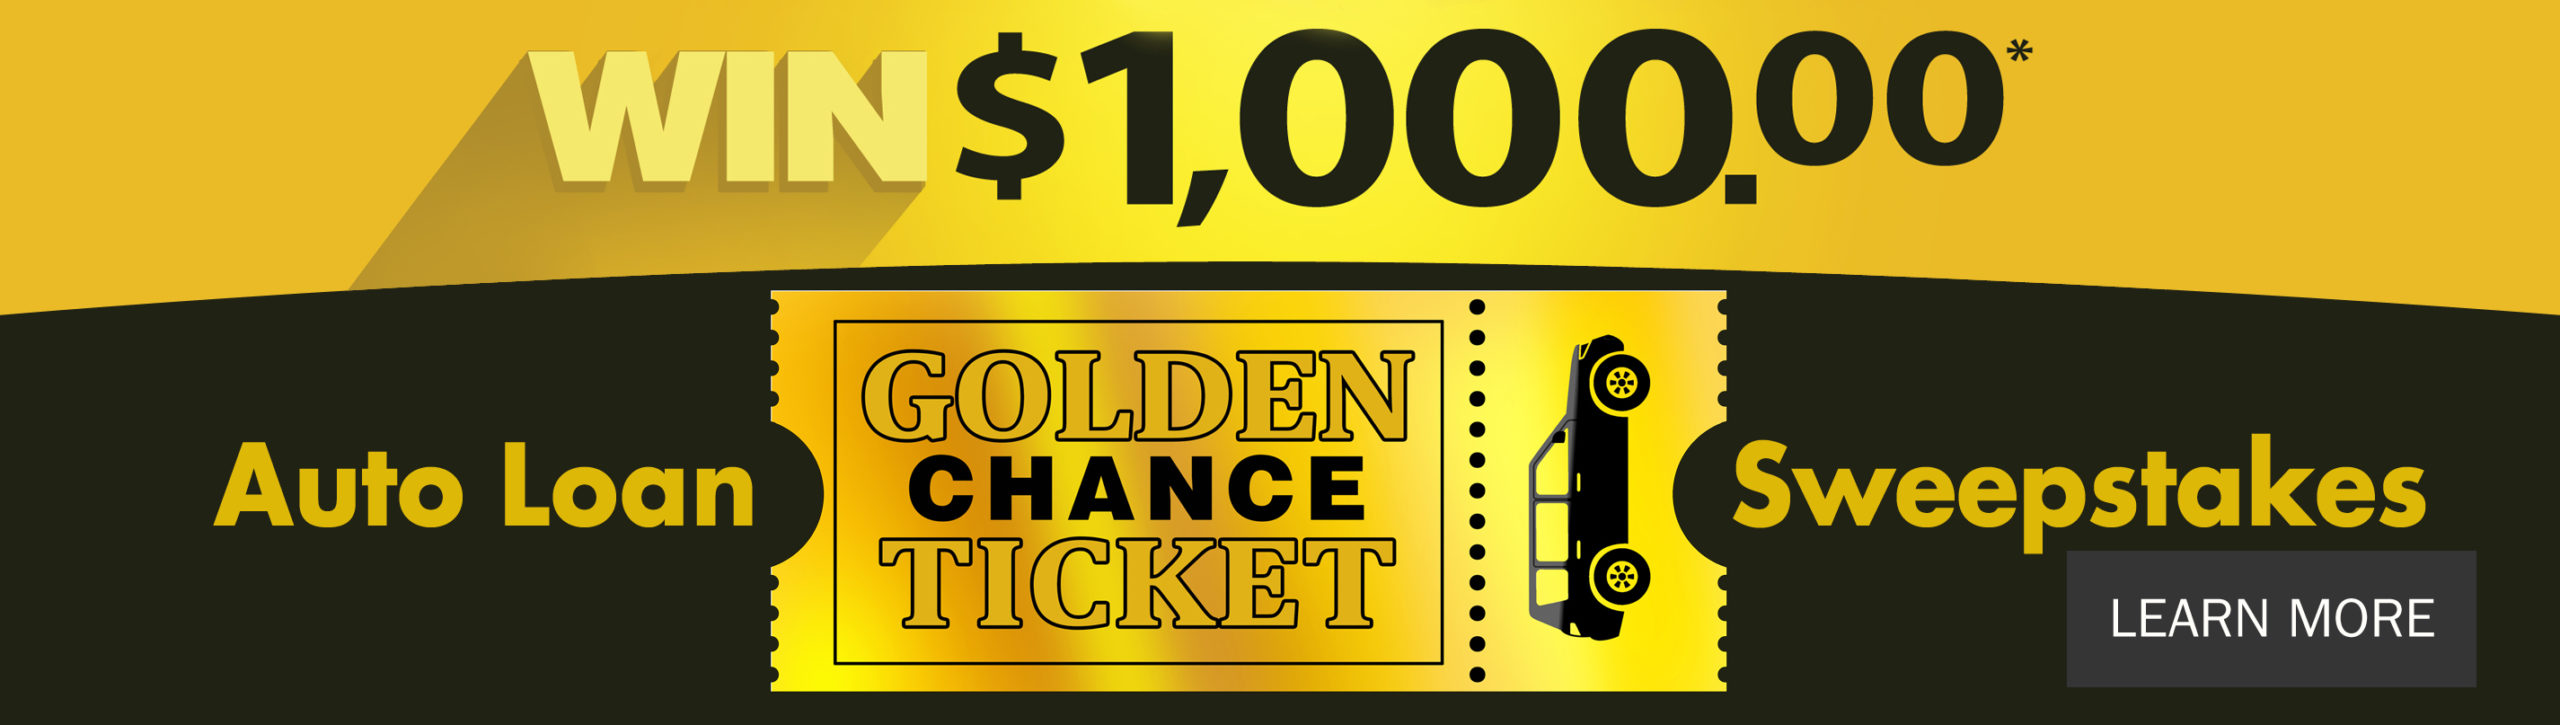 Win $1,000.00 Auto Loan Sweepstakes, Learn More